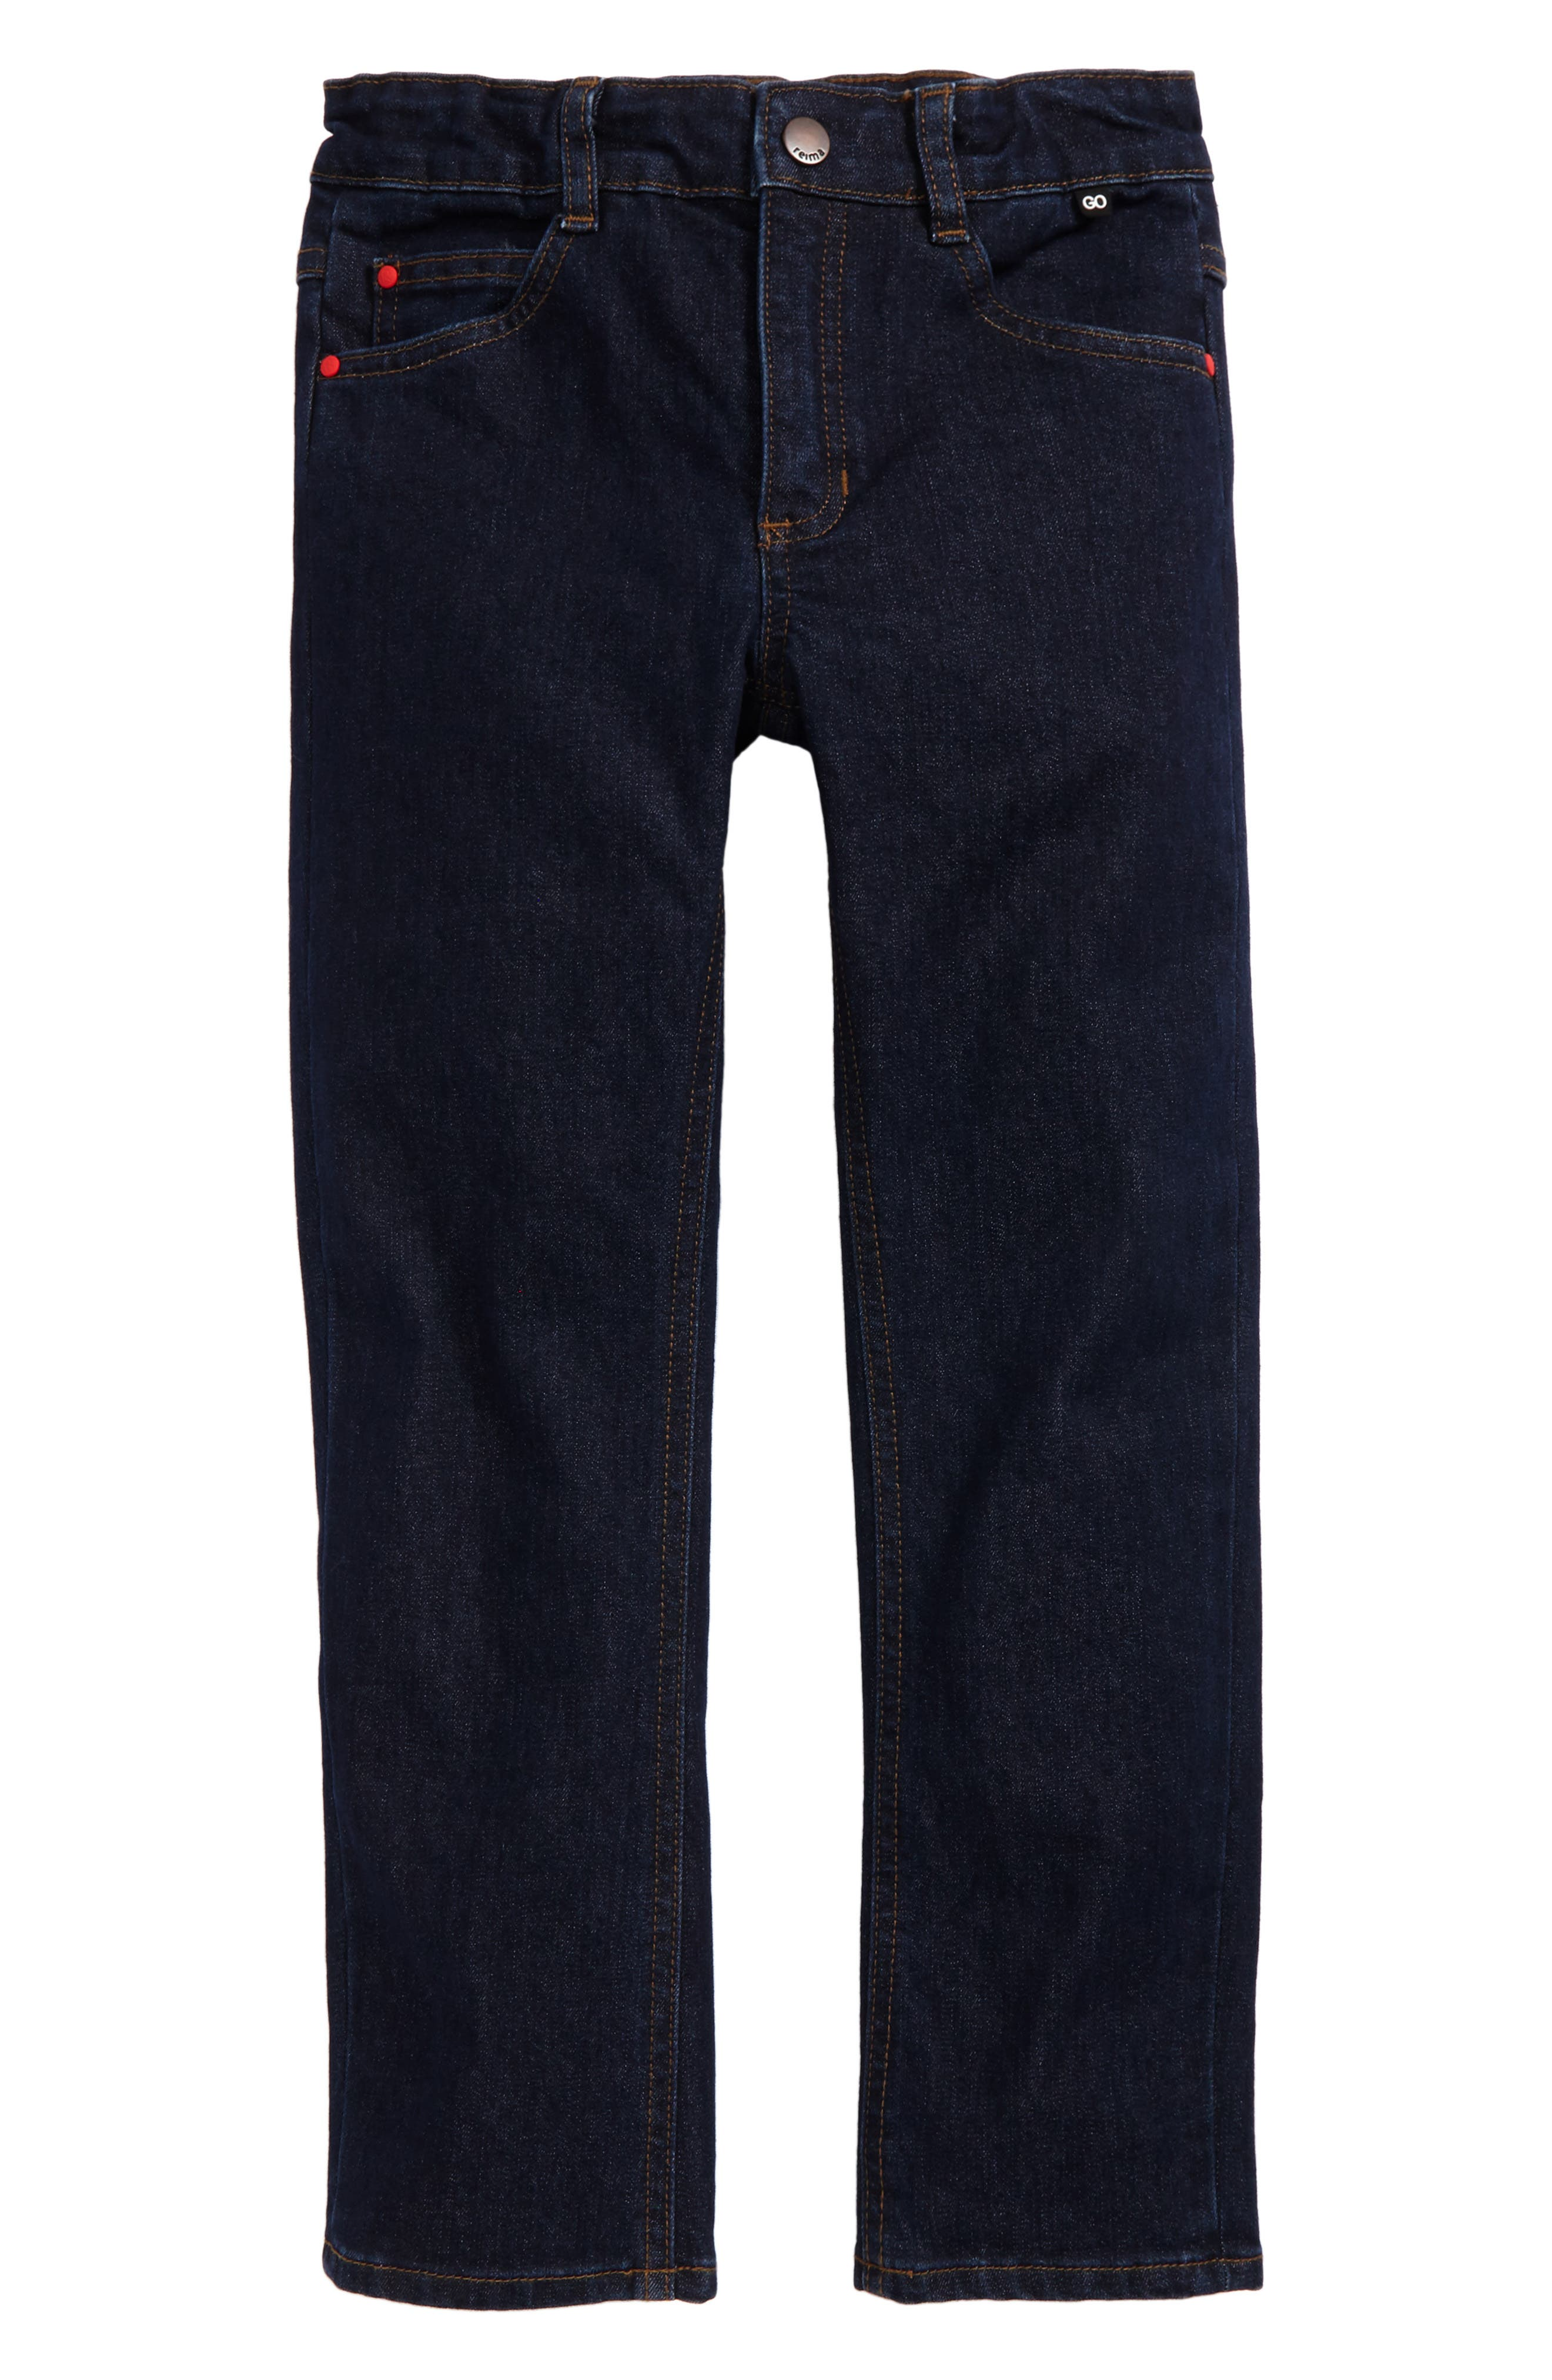 Trick Straight Leg Jeans,                         Main,                         color, Navy